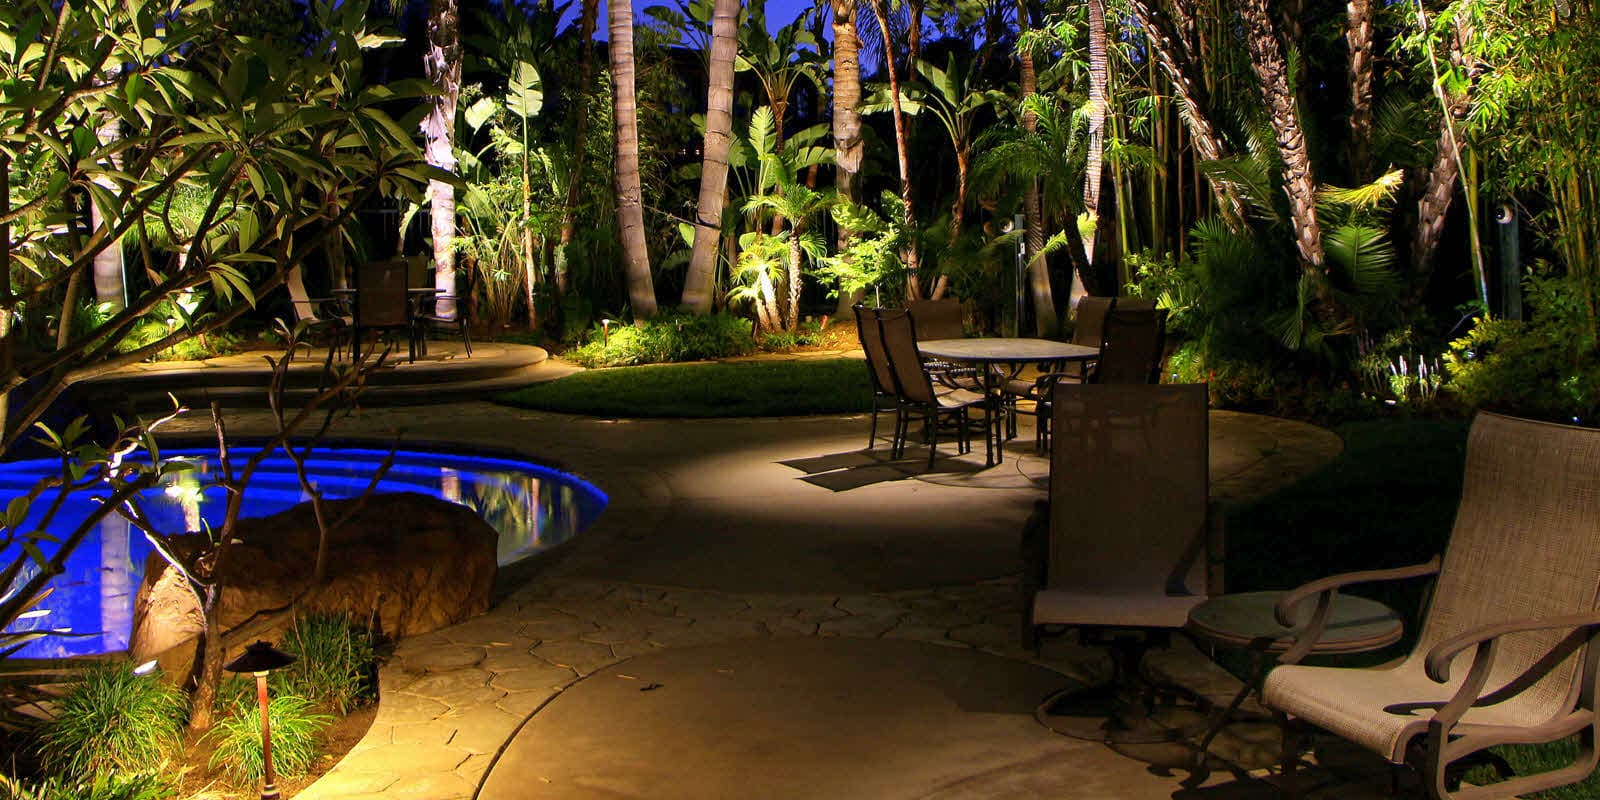 Illuminated concepts for Outdoor lighting concepts